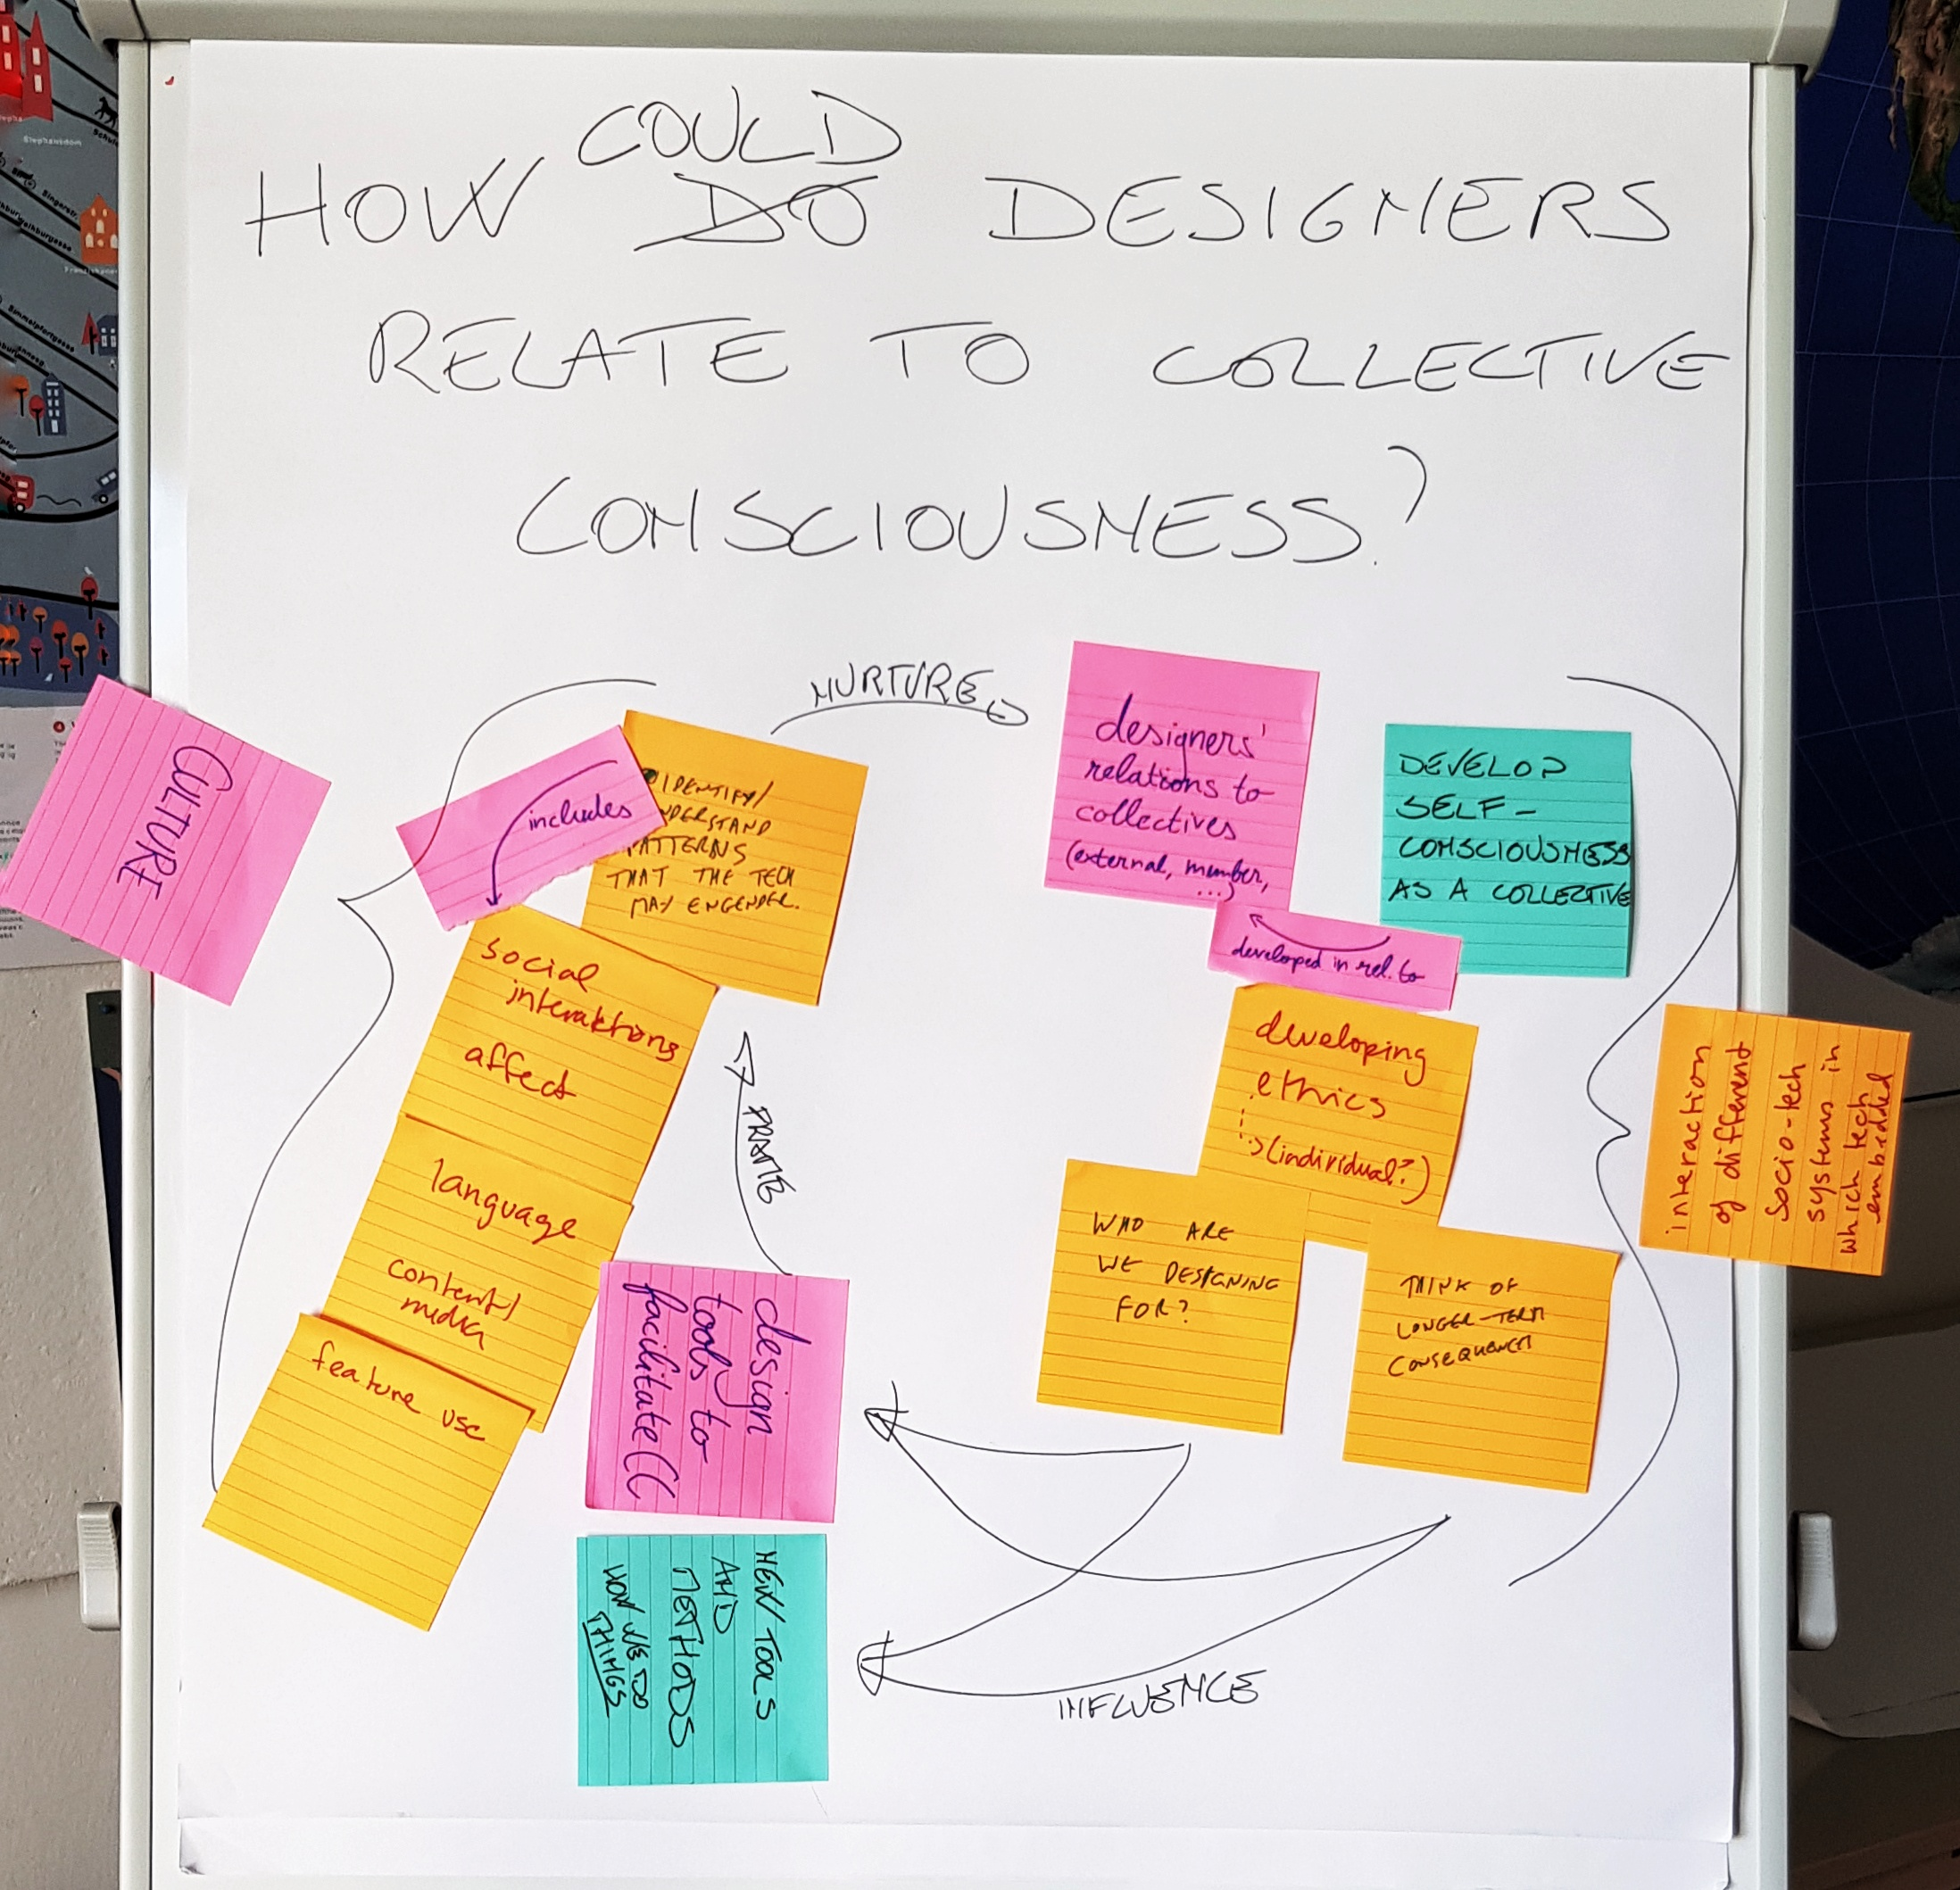 How could designers relate to collective consciousness?